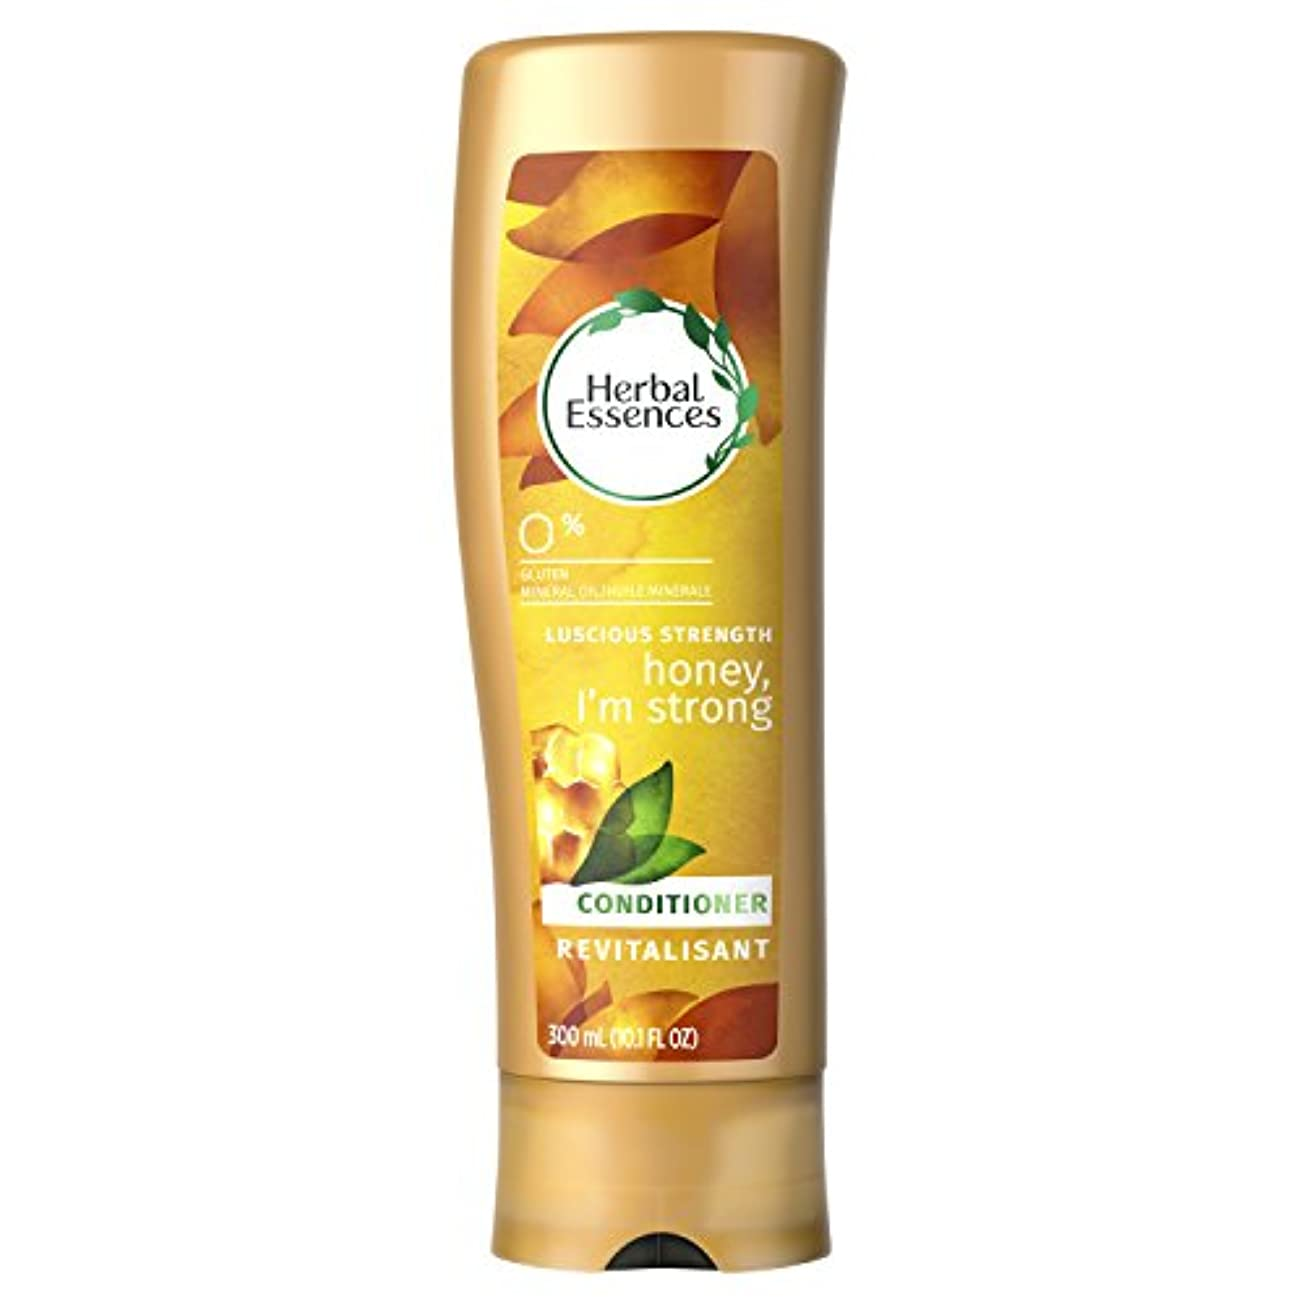 非難麻酔薬ローマ人Herbal Essences Honey I'm Strong Strengthening Conditioner, 10.1 Fluid Ounce by Procter & Gamble - HABA Hub [並行輸入品]